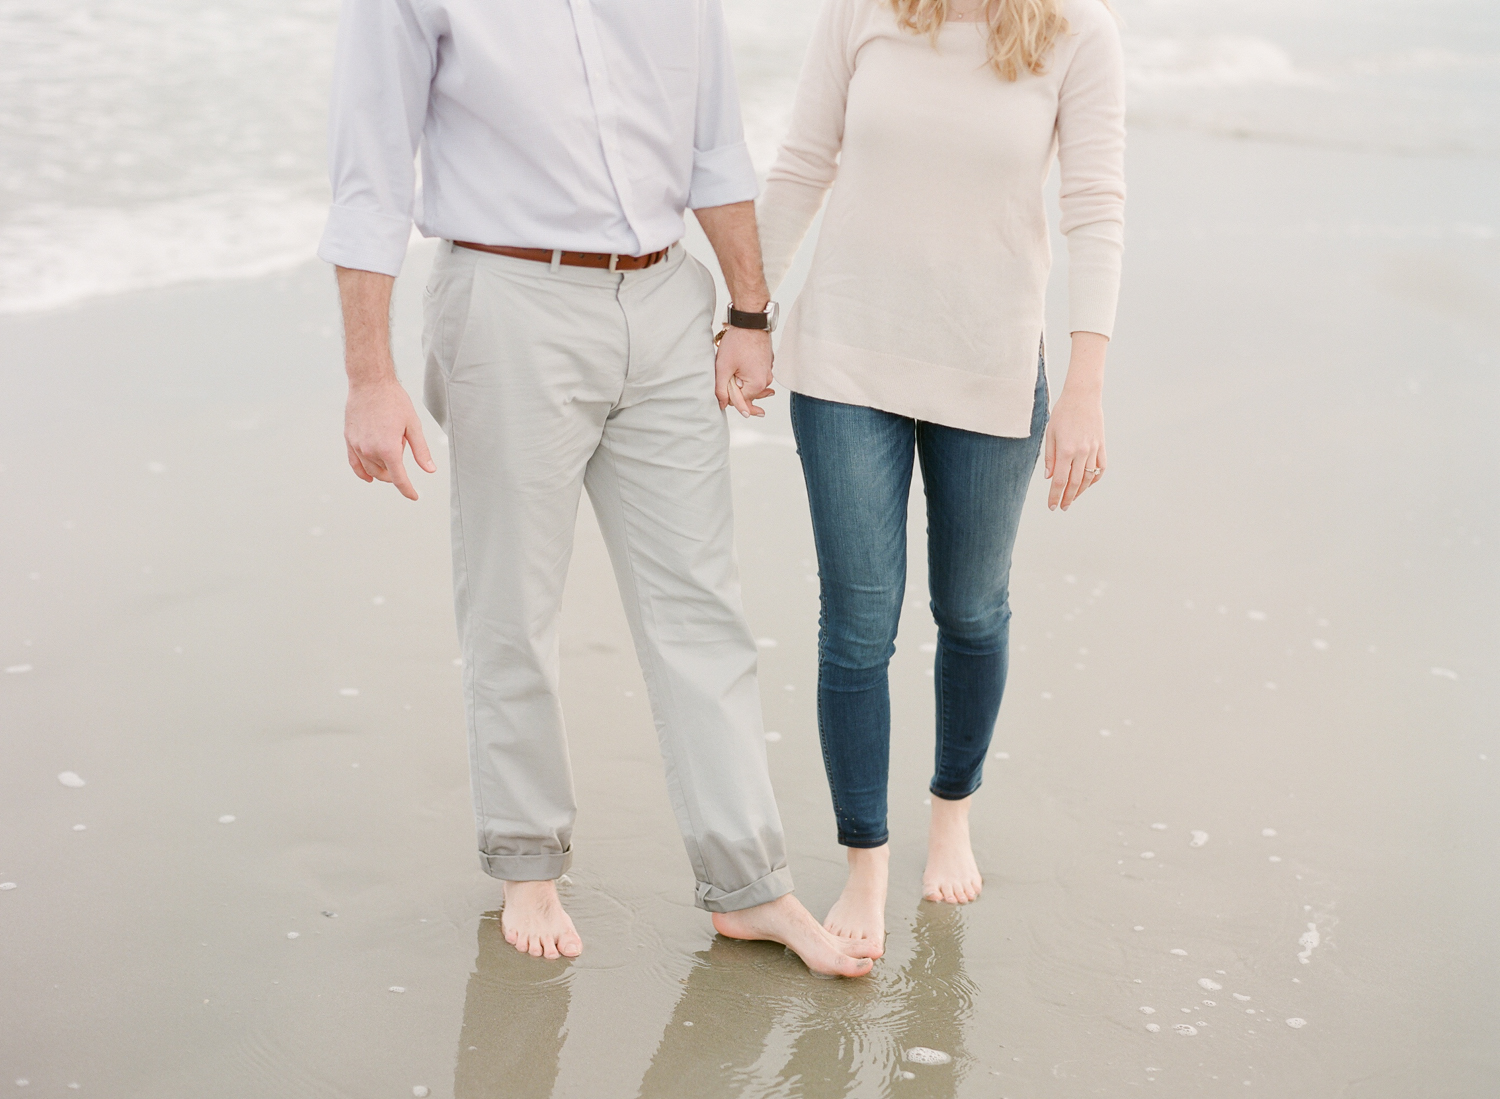 Charleston-Engagement-Session-Photos-61.jpg